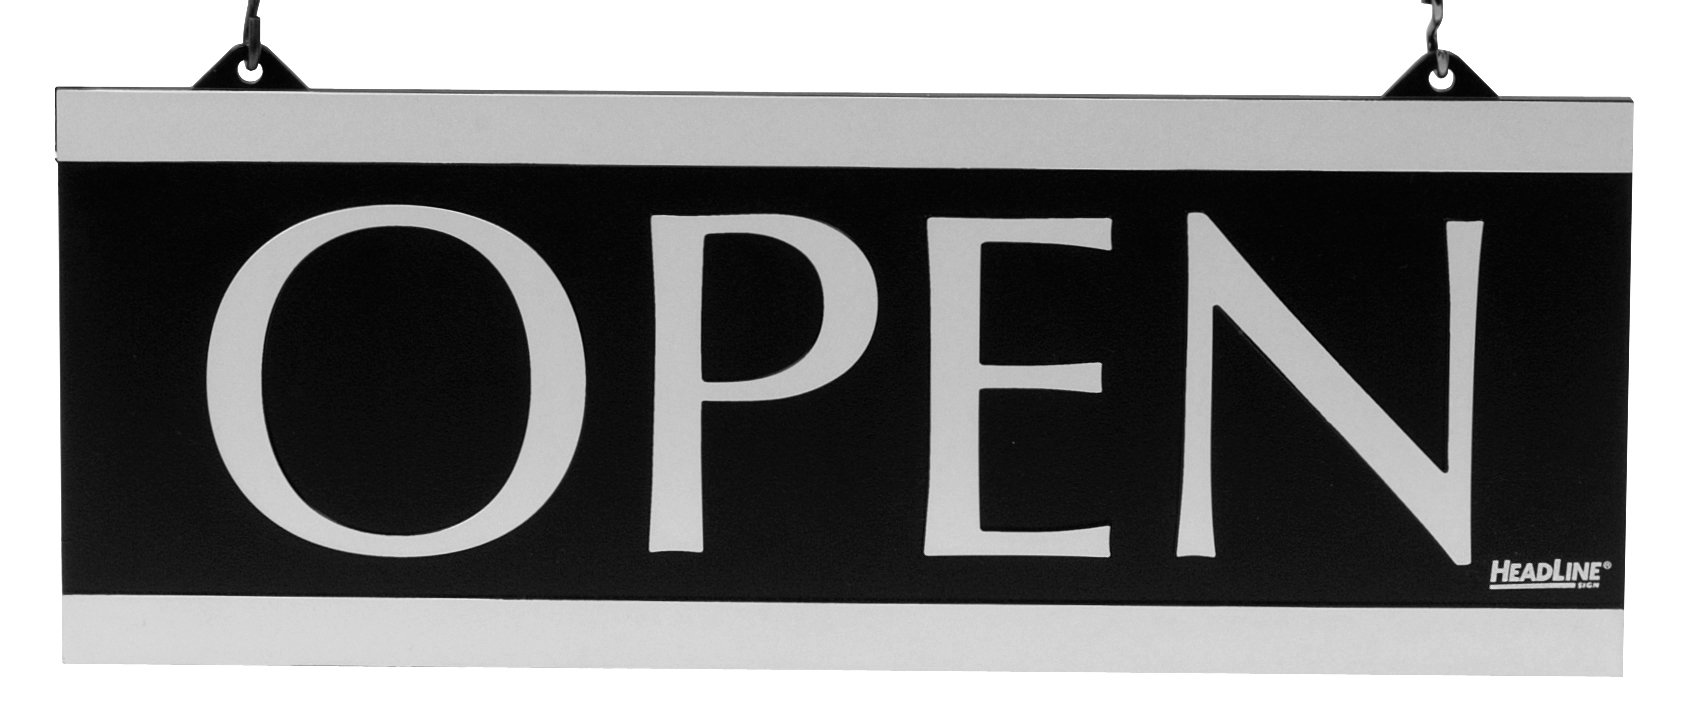 Headline Sign - Century Series 2-Sided Reversible''OPEN'' /''CLOSED'' Sign with Hanging Holes, Suction Mount, 13'' x 5'', Black and Silver (4246)